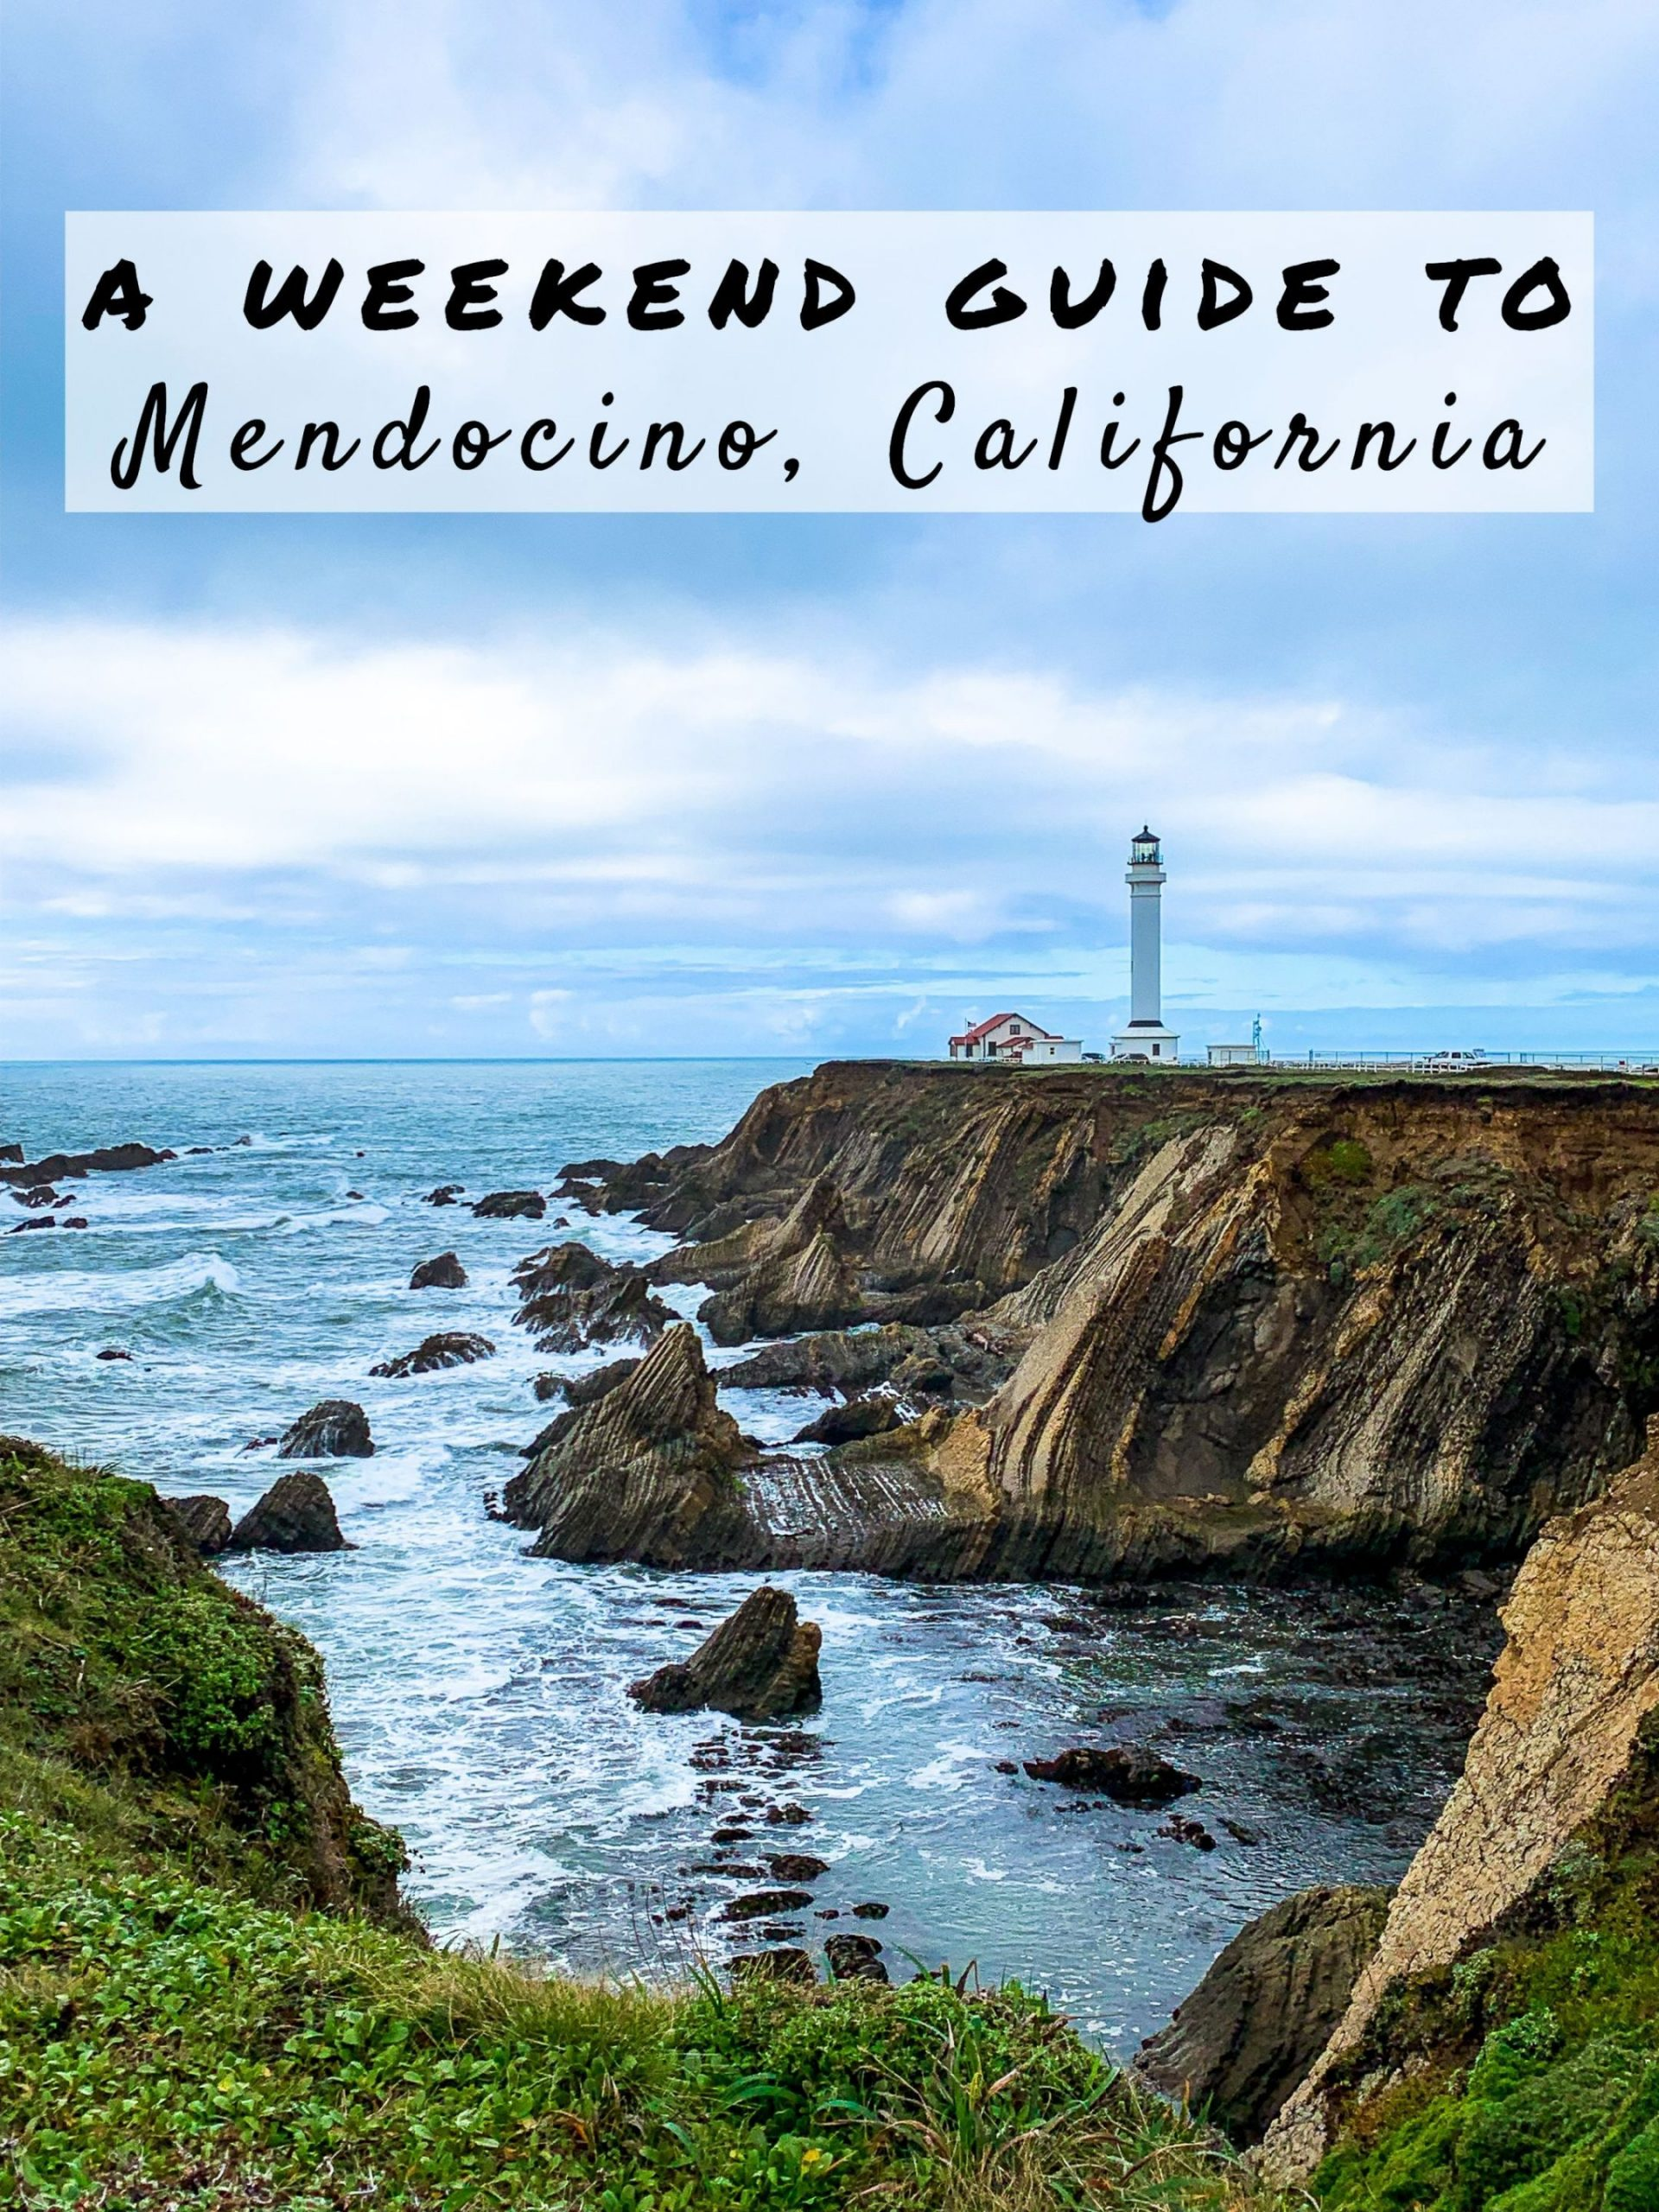 Wondering what to eat, see and do in Mendocino, California? This guide includes the best spots to drink and dine, quaint hotels, and fun things to do, along with must-see sites including where to go on a safari!